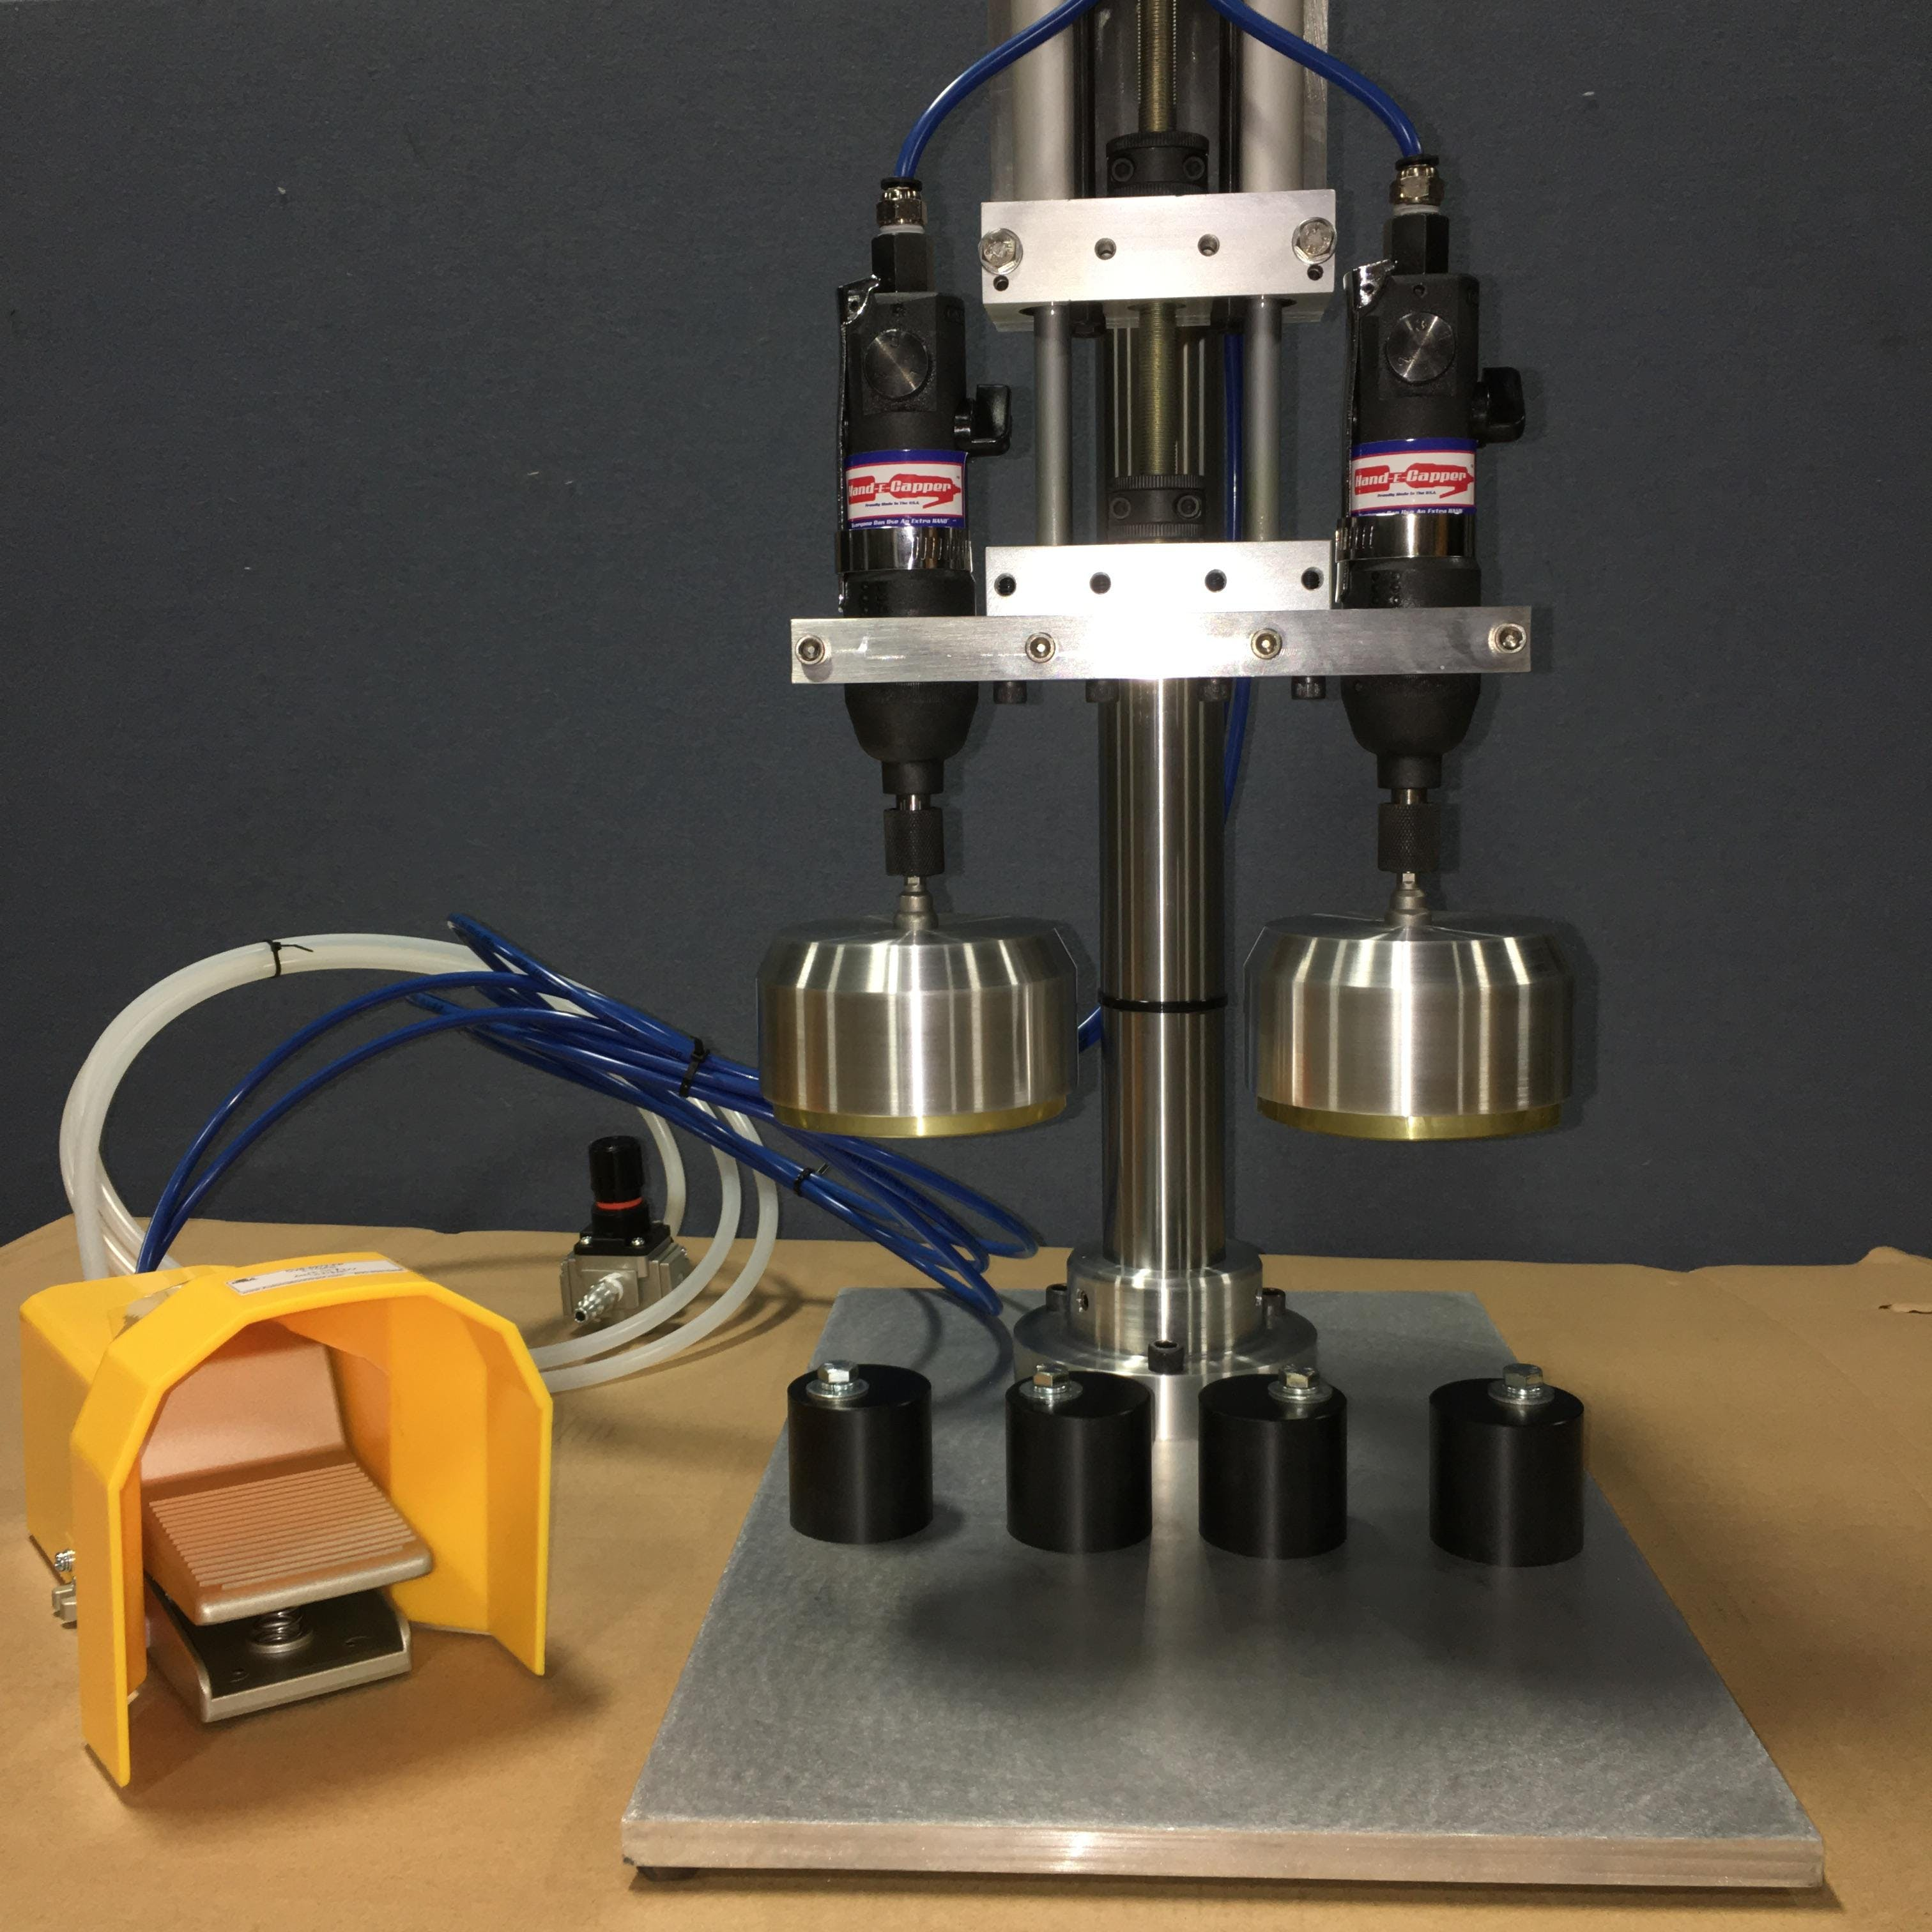 Hand-E-Capper Model V2 Dual Head Bench Top Cap Tightener Cap tightener sold by Hand-E-Capper LLC.